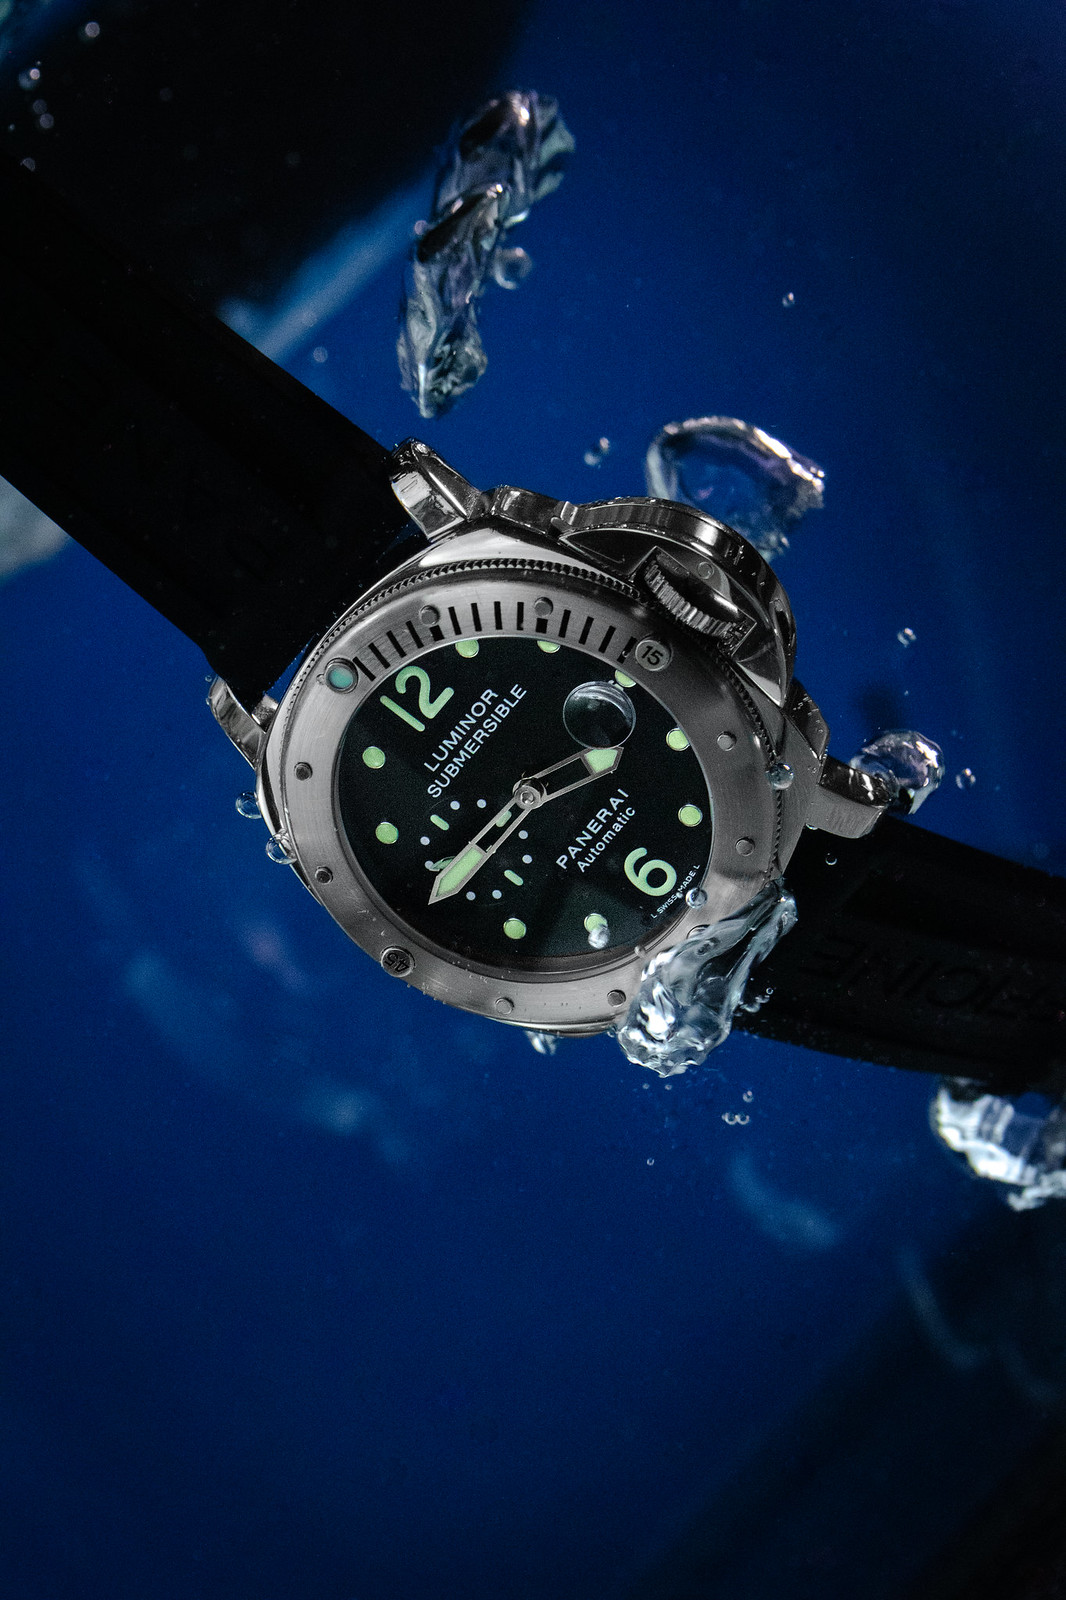 Panerai Submersible PAM024 Diving